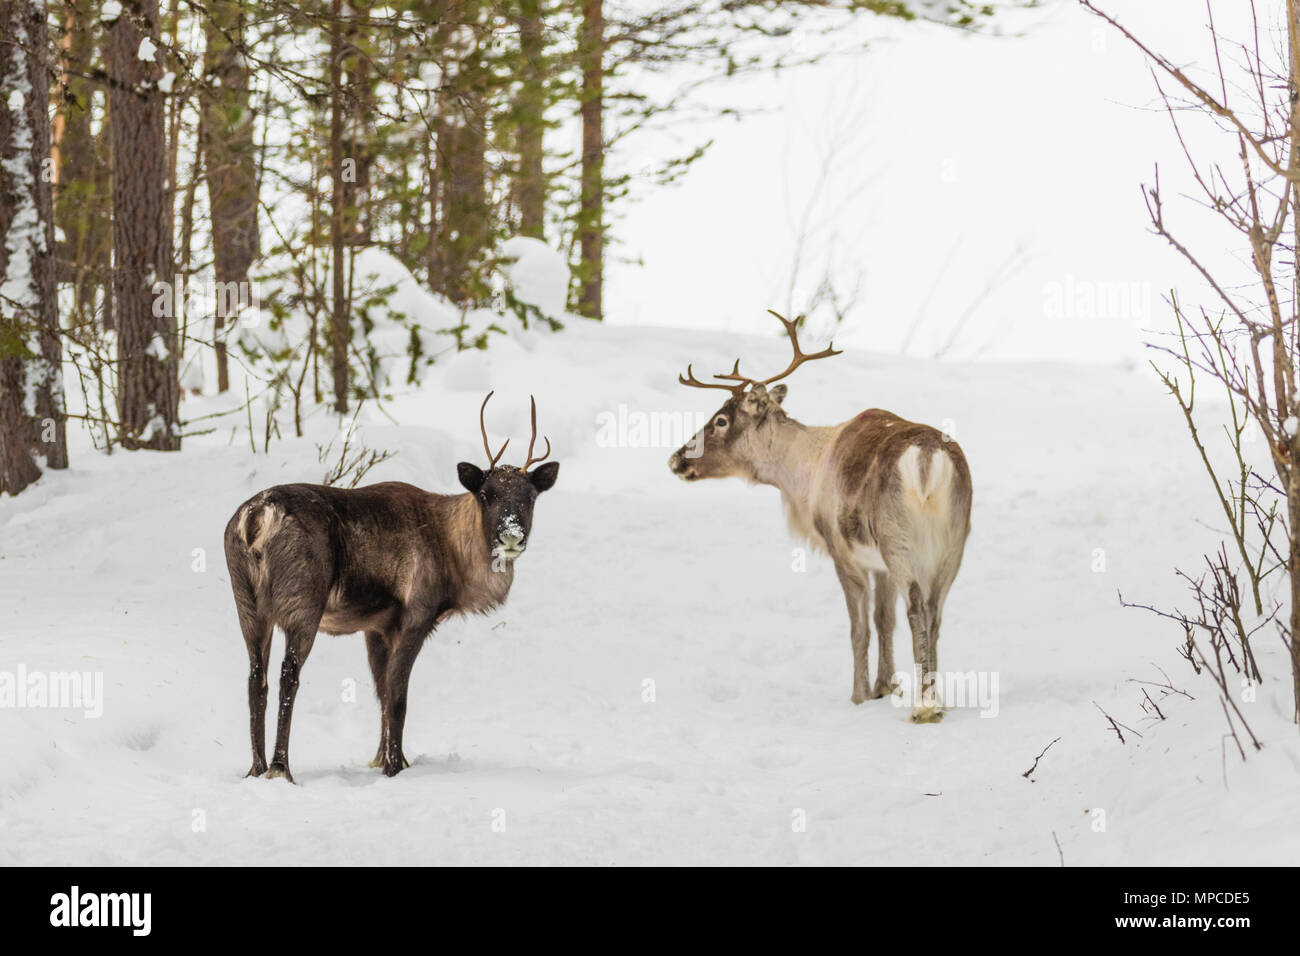 Two Reindeers, Rangifer tarandus, standing in forest in winter season looking in to the camera, Gällivare county, Swedish Lapland, Sweden - Stock Image